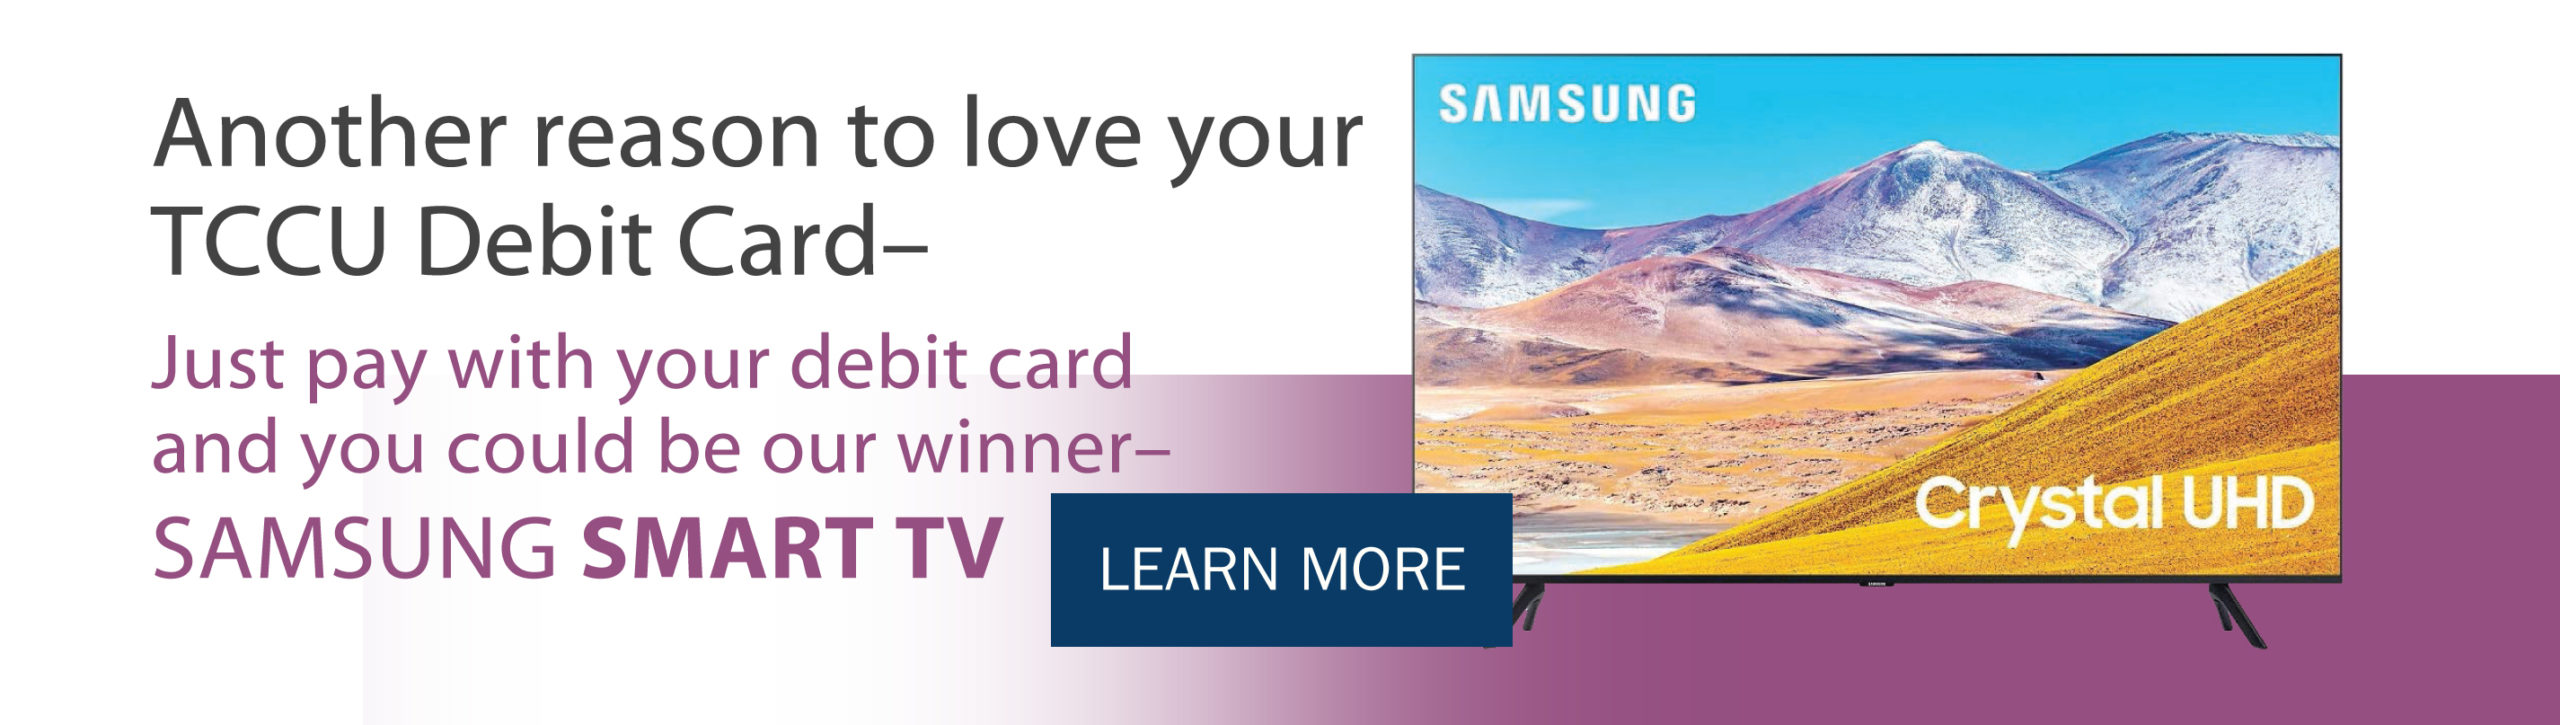 Another reason to love your TCCU Debit Card_ Just pay with your debit card and you could be our winner-Samsung Smart TV (click)Learn more